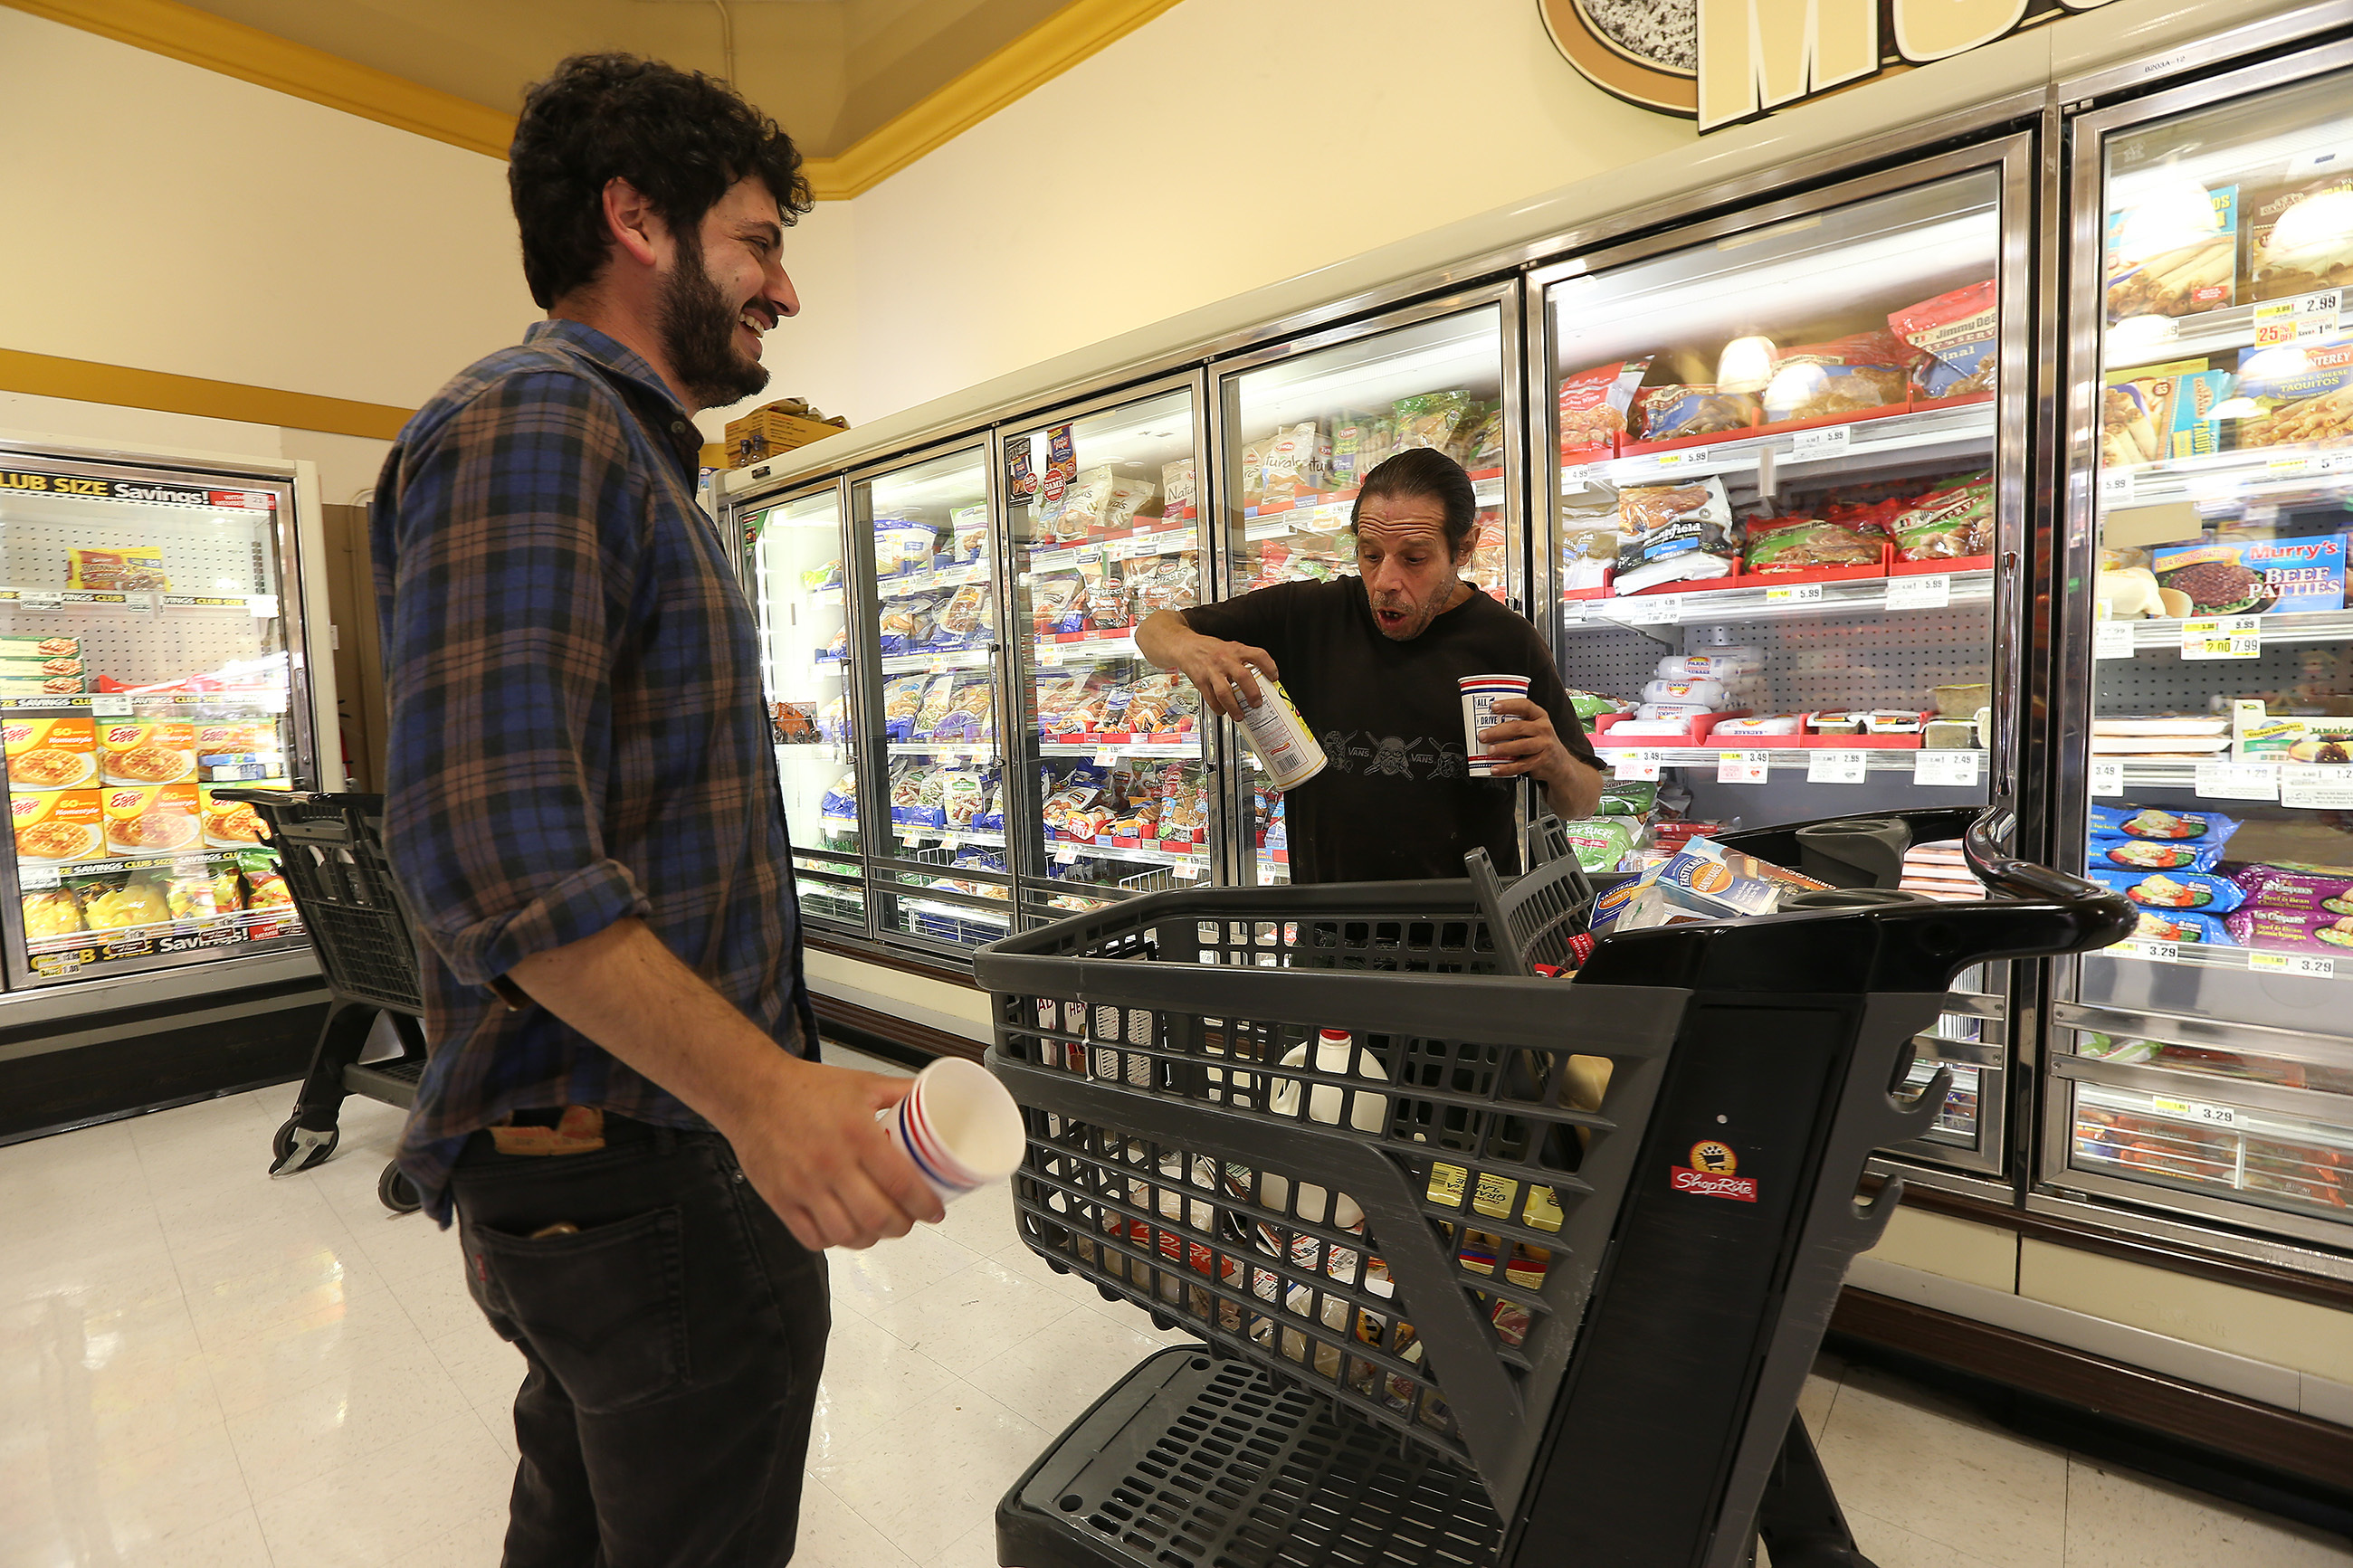 Gabriel Kalmuss-Katz, left, a social worker at Pathways to Housing PA, accompanies Anthony Messina grocery shopping before he moves into his new apartment on Sept. 11. (DAVID MAIALETTI / Staff Photographer)